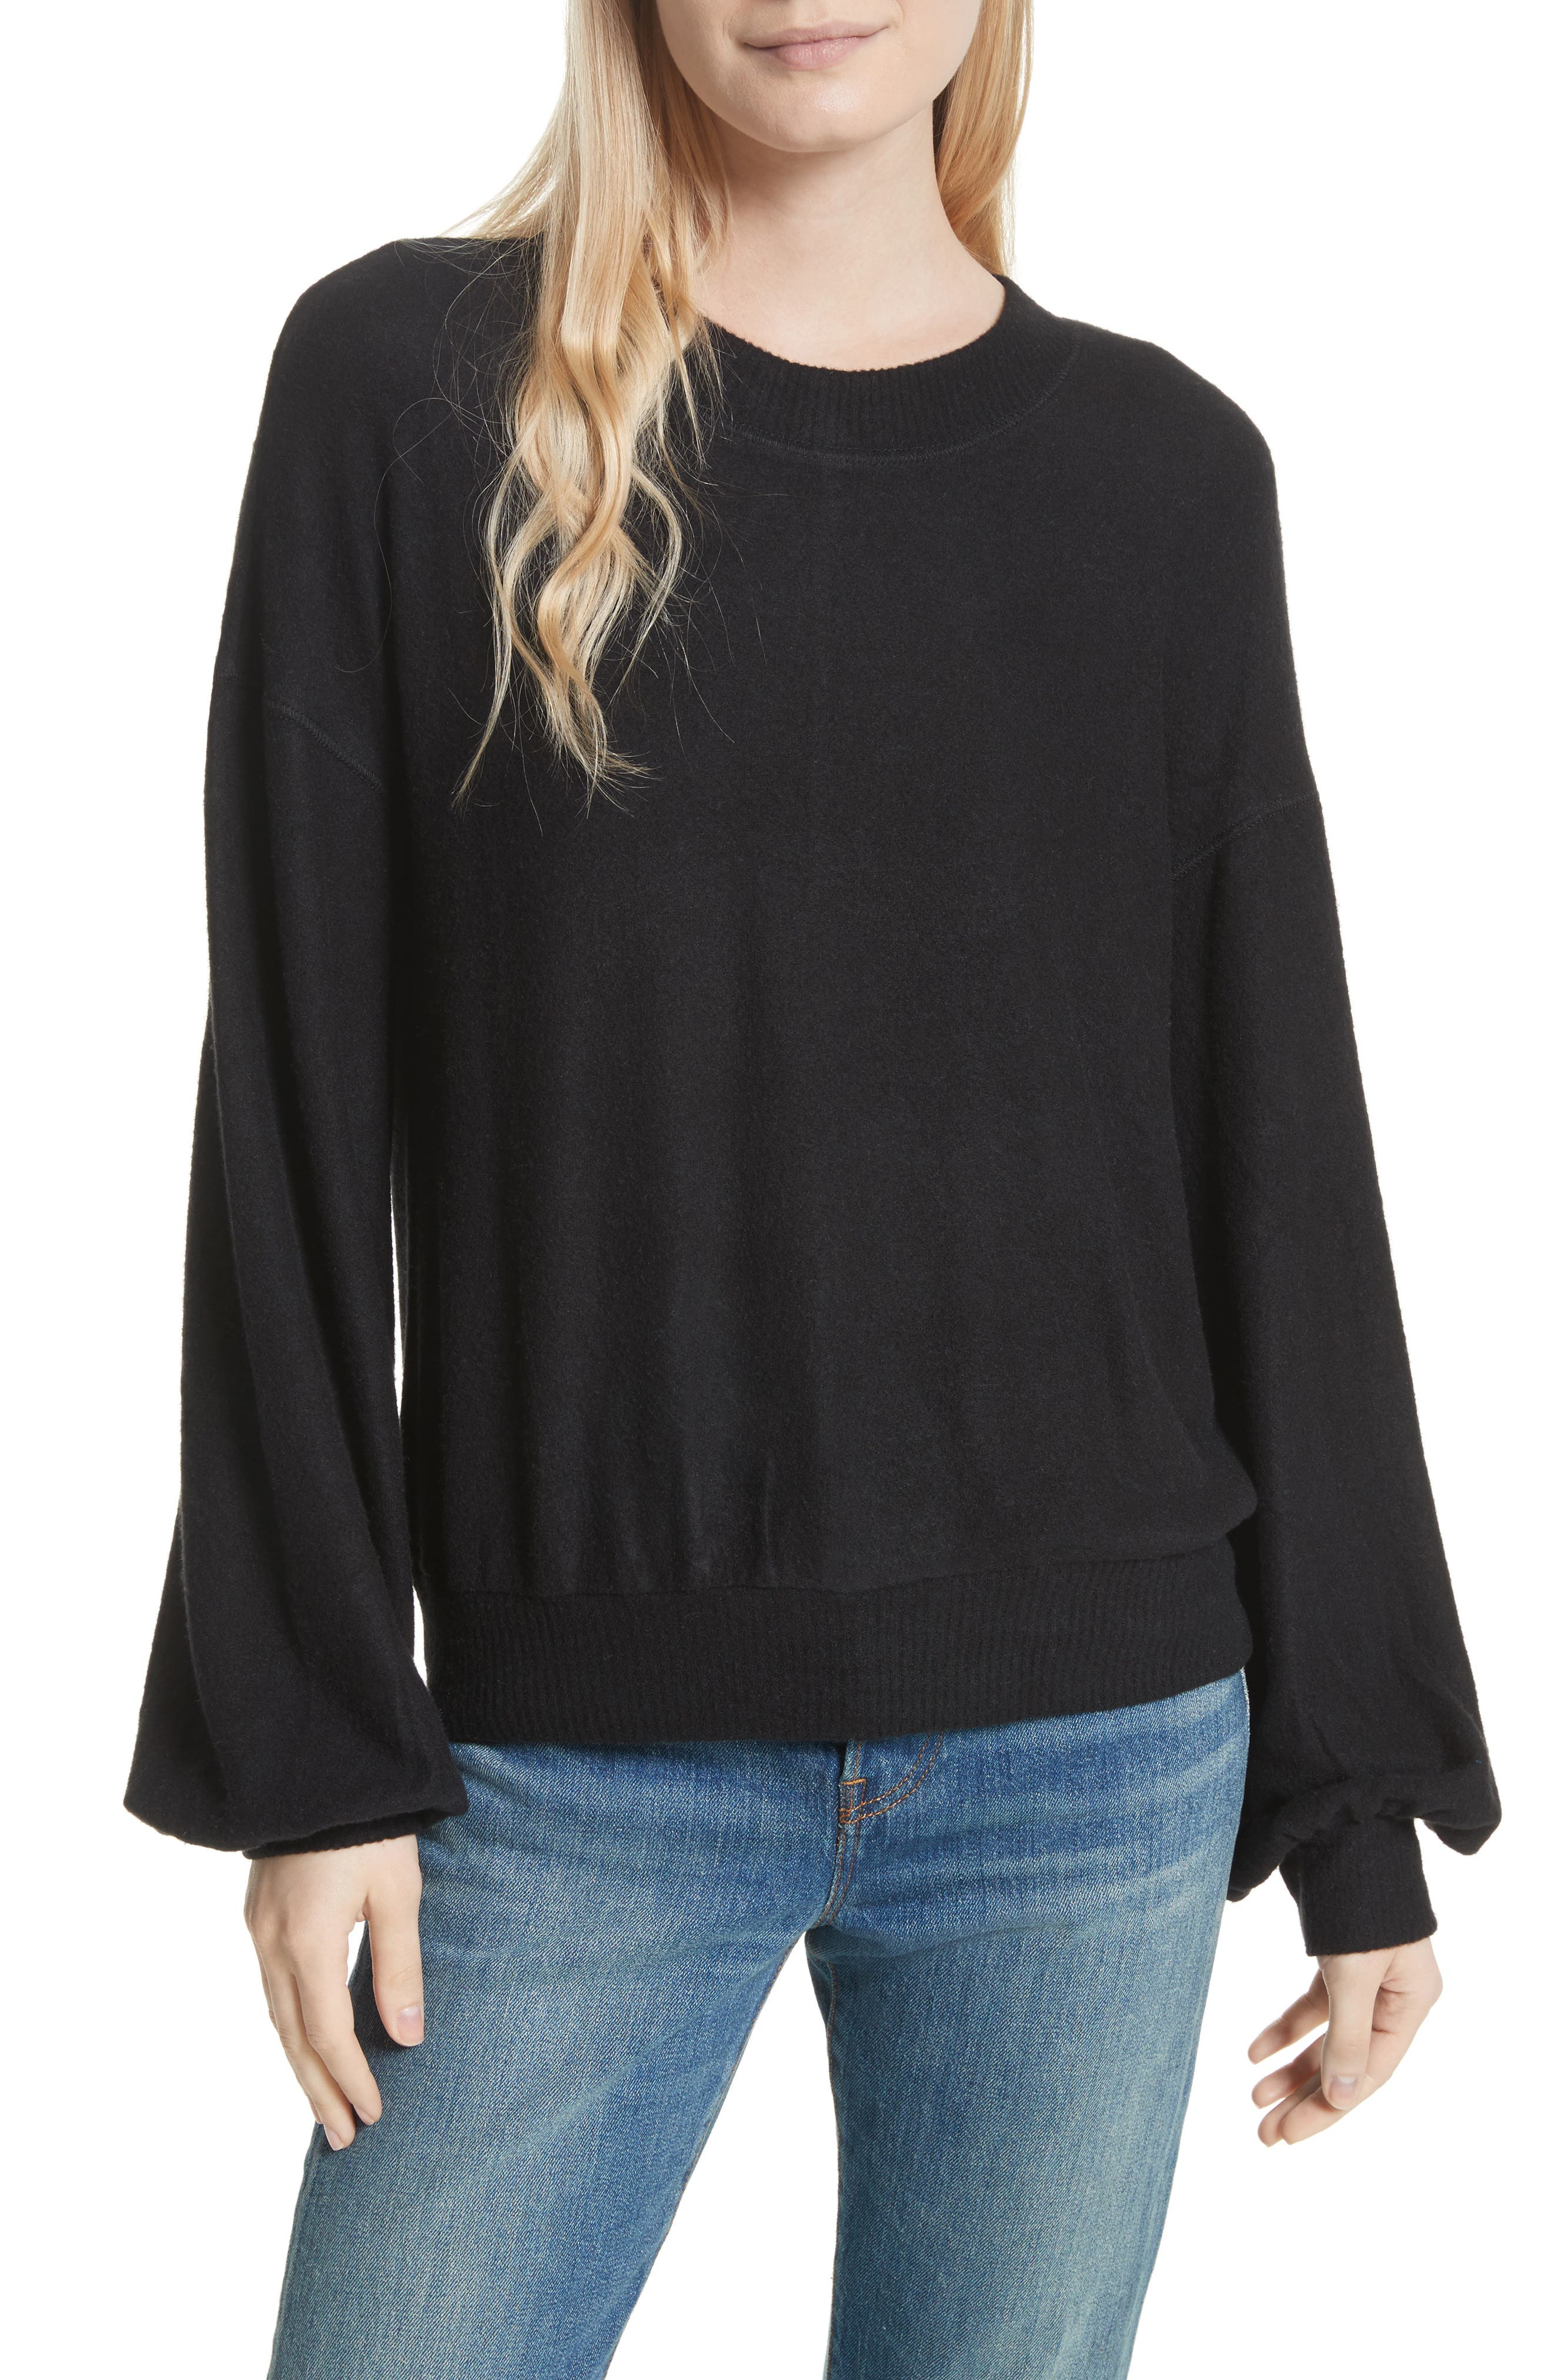 TGIF Pullover,                         Main,                         color, 001